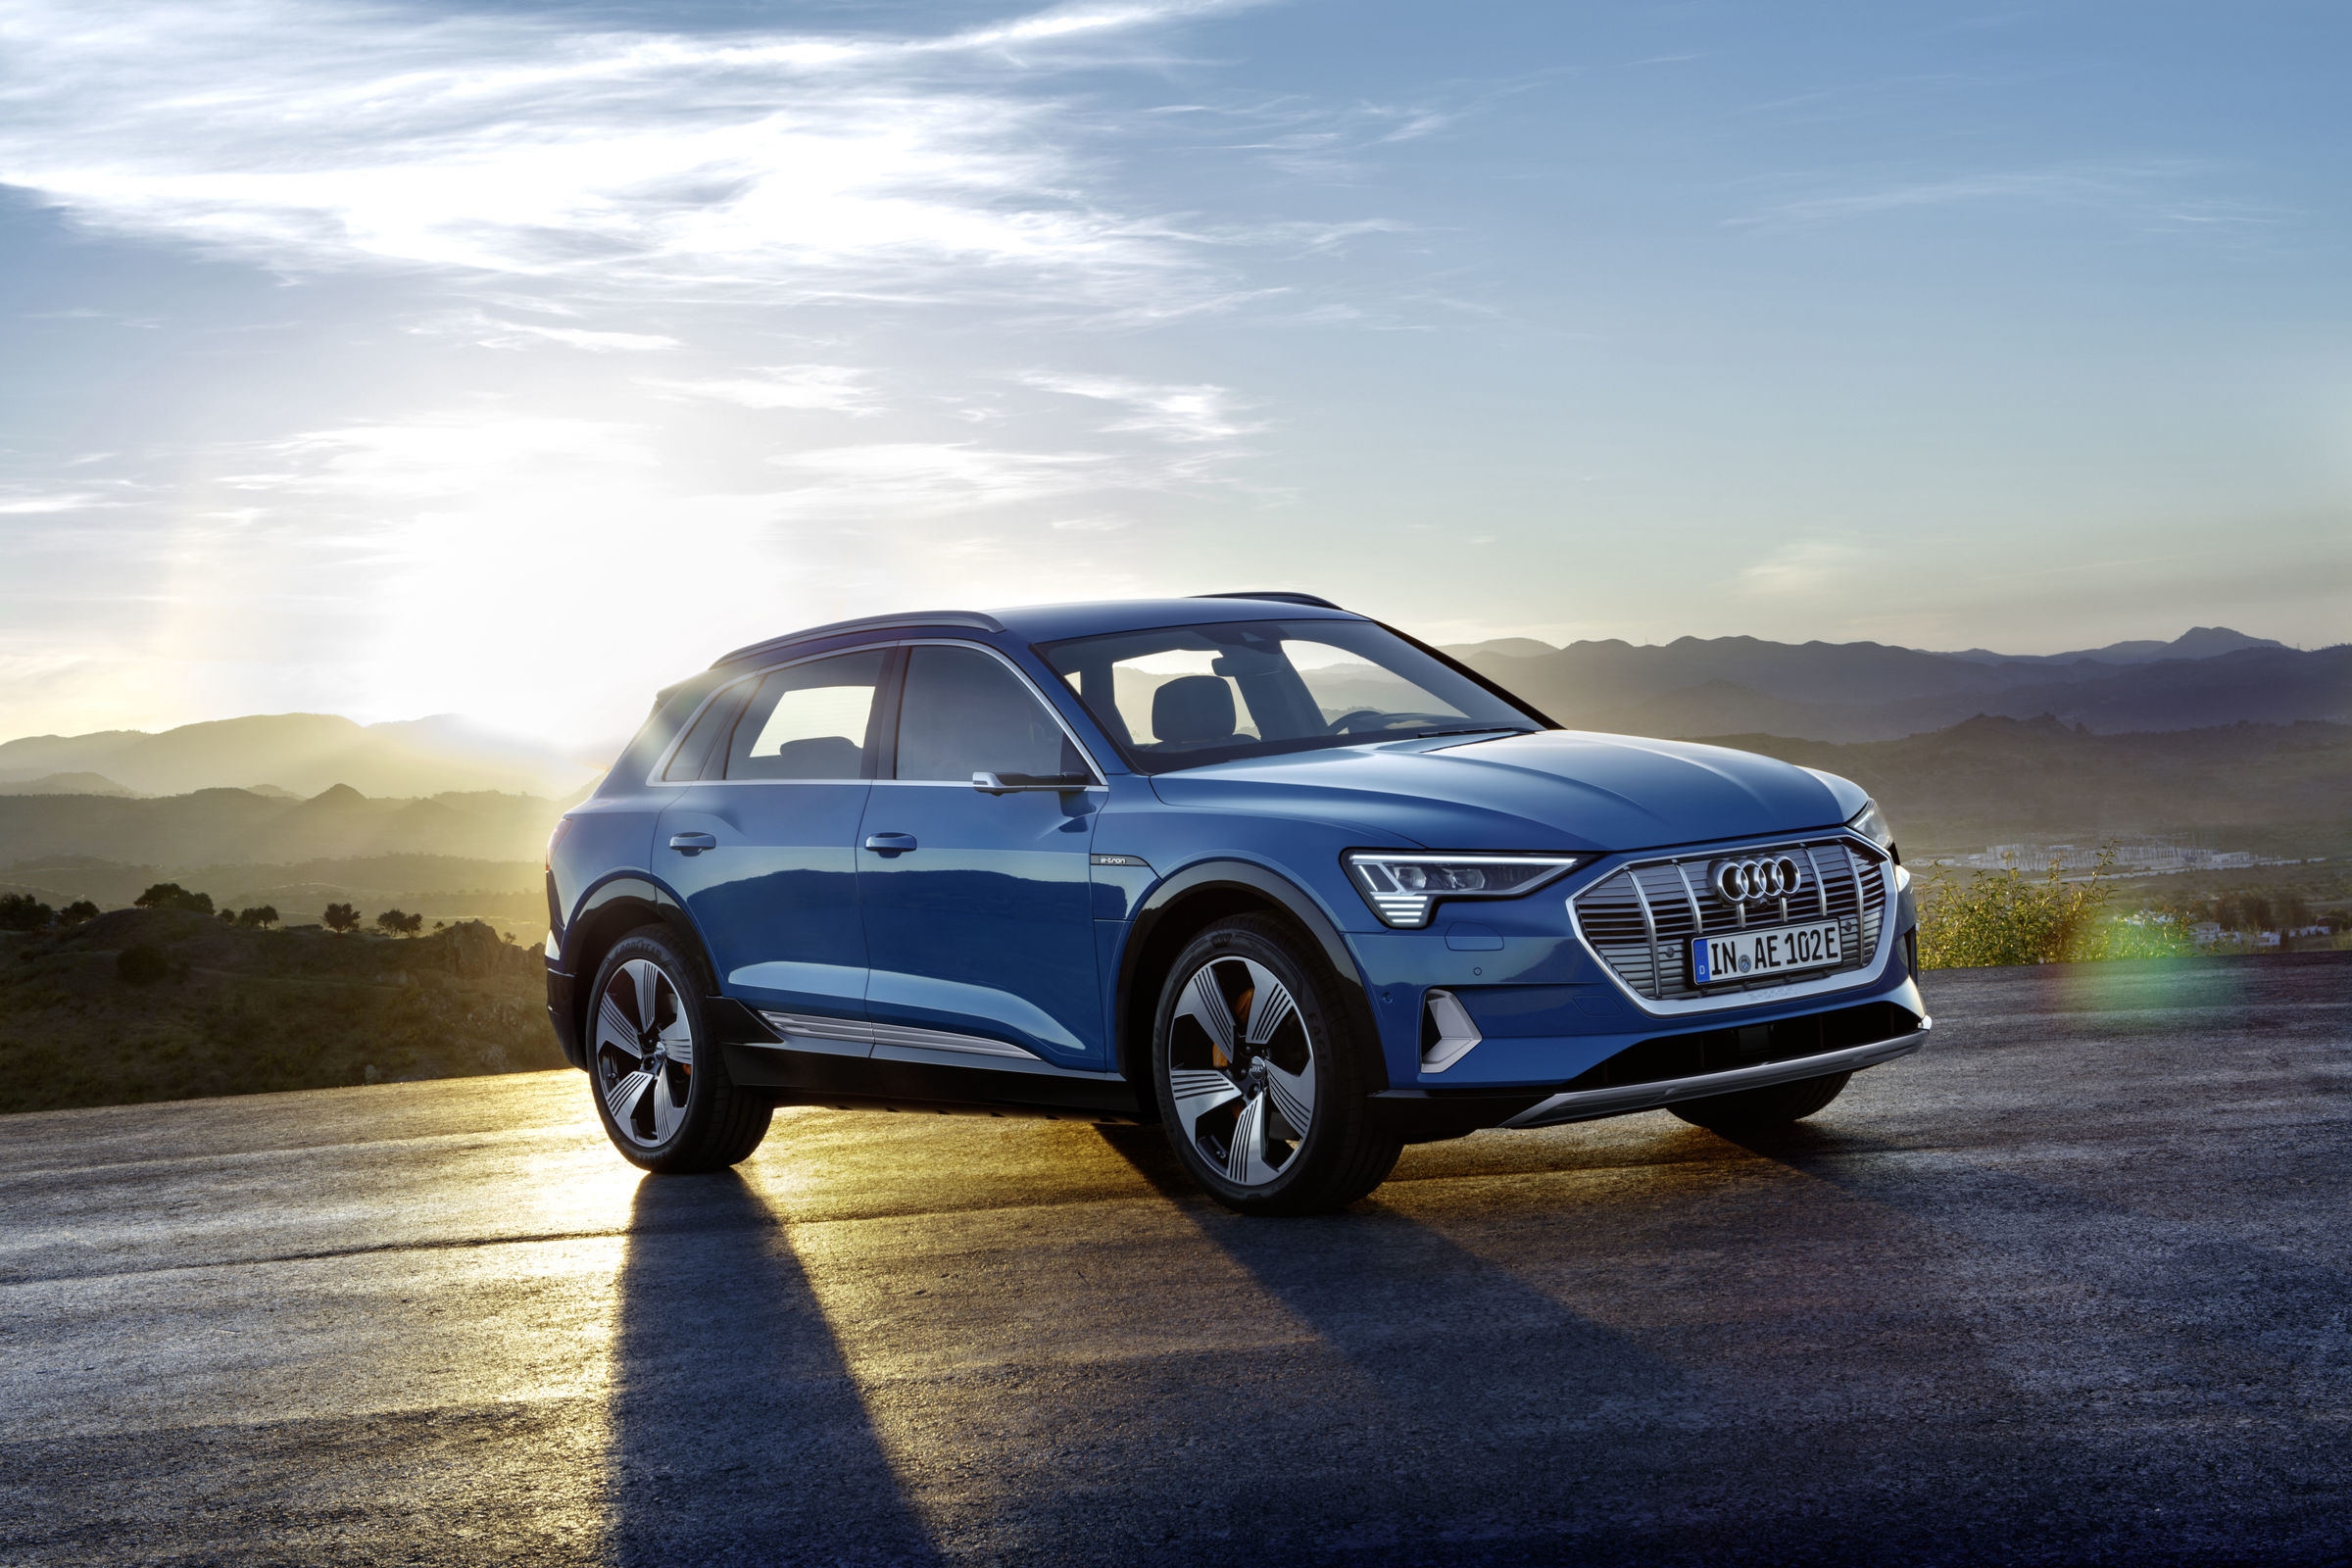 Audi e-tron este primul model 100% electric al constructorului german